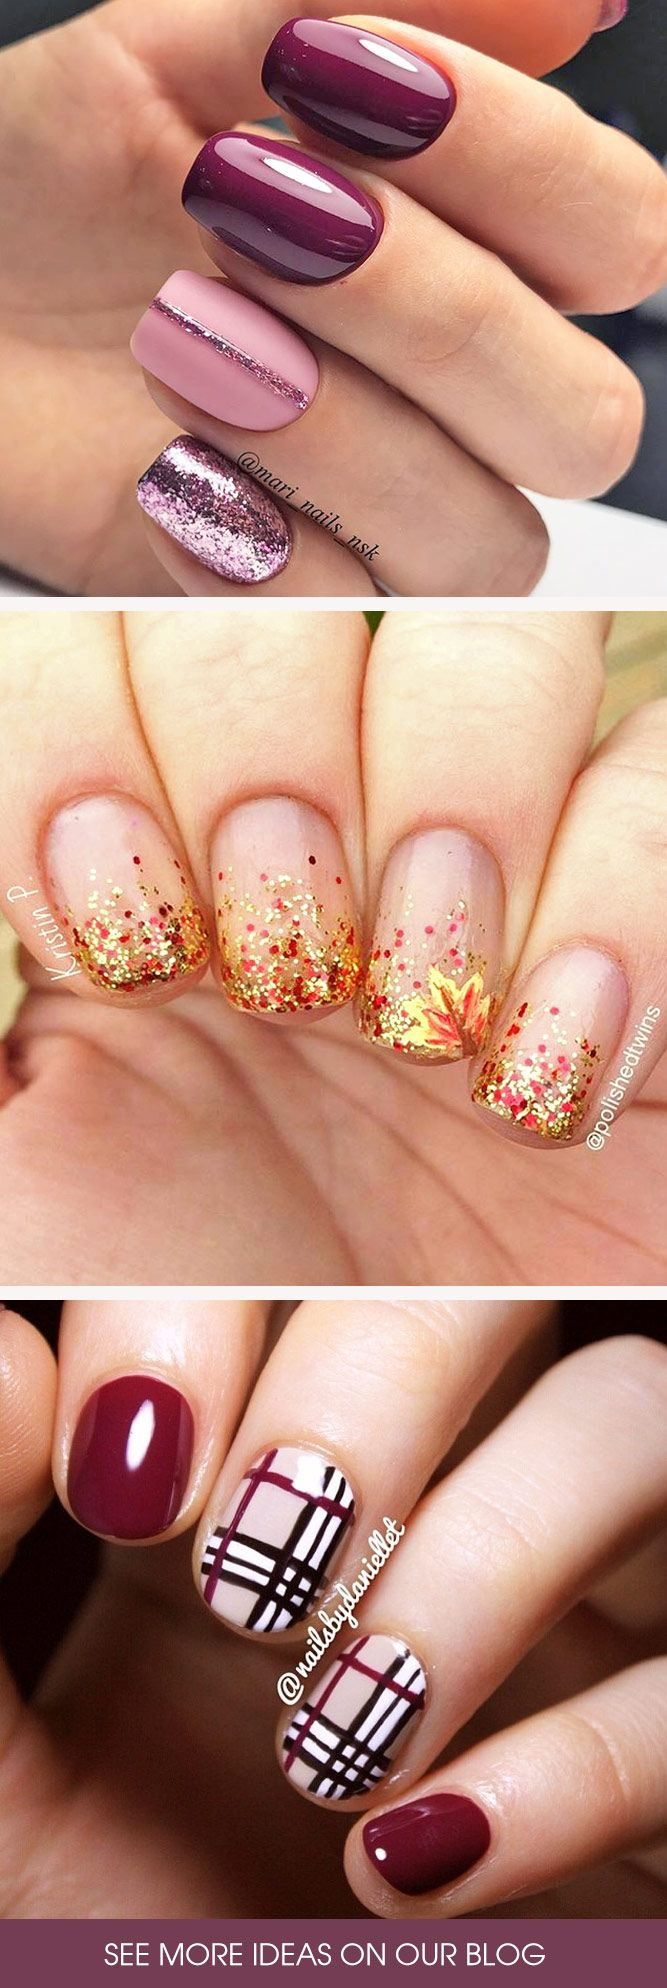 Basic Manicure Nail Care Routine: Best 25+ Nails Ideas On Pinterest